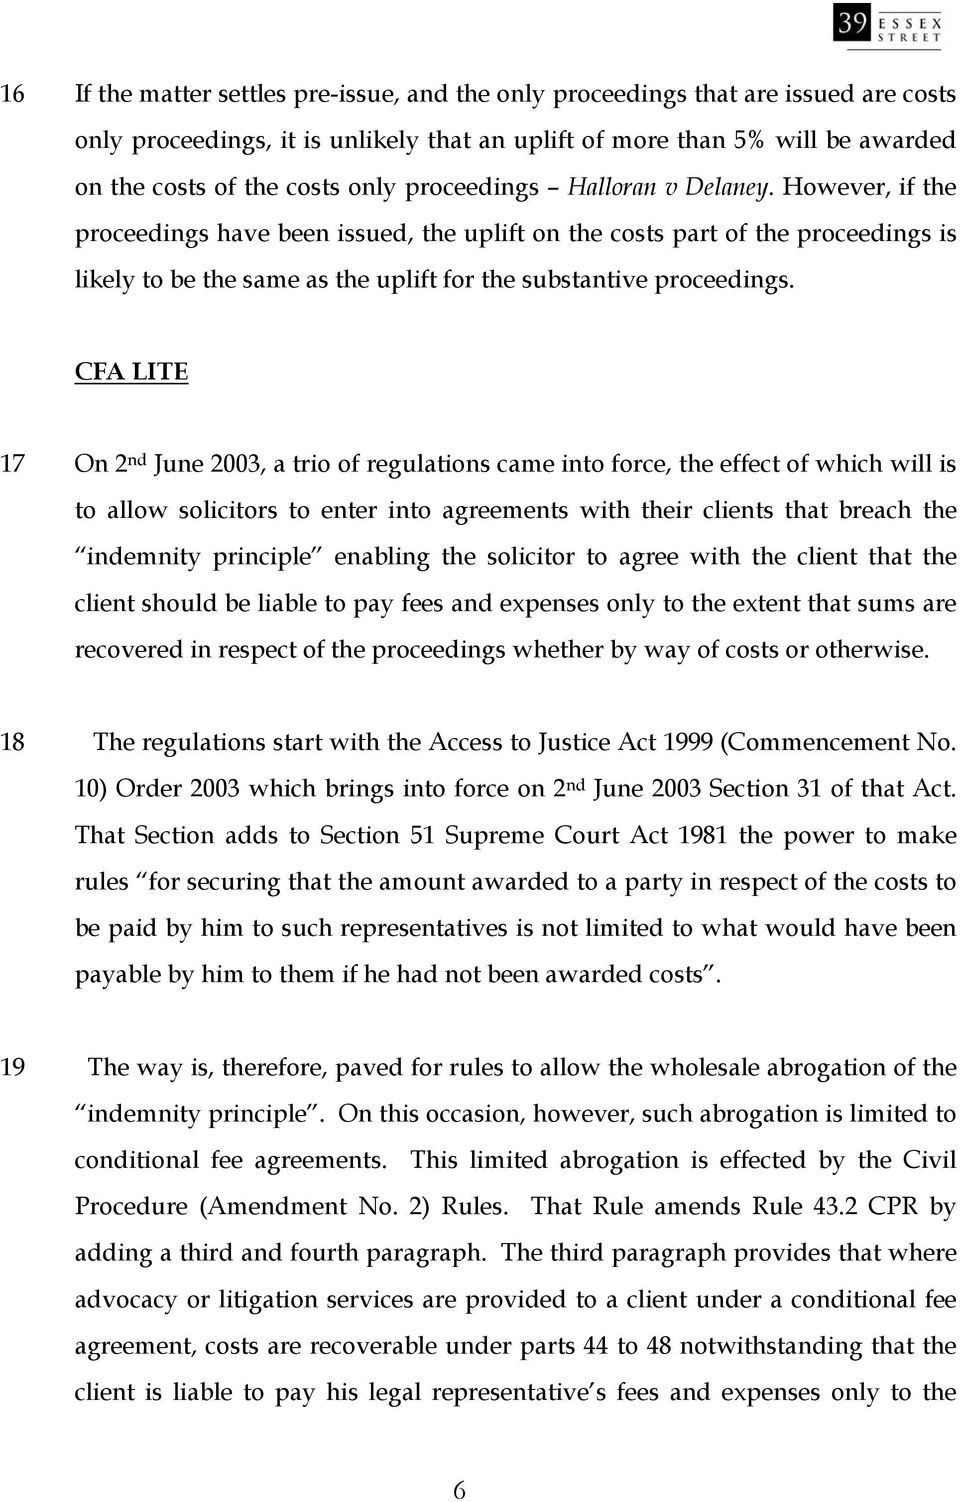 CFA LITE 17 On 2 nd June 2003, a trio of regulations came into force, the effect of which will is to allow solicitors to enter into agreements with their clients that breach the indemnity principle